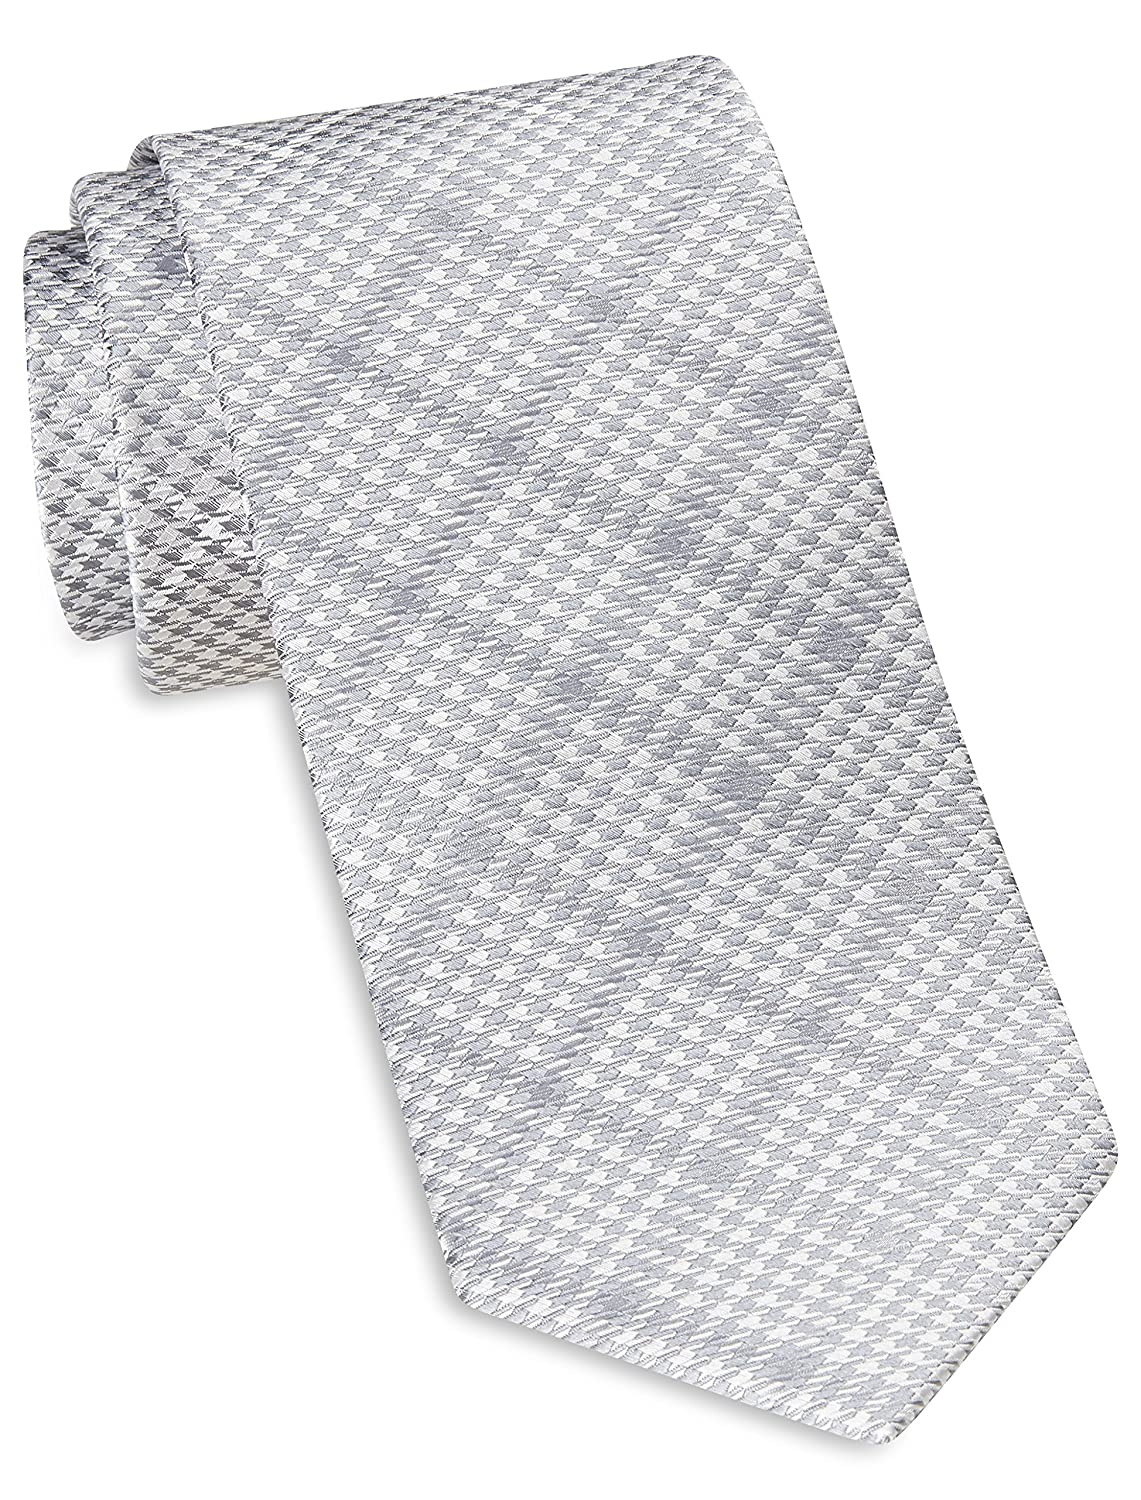 Rochester by DXL Designed in Italy Tonal Houndstooth Windowpane Plaid Silk Tie